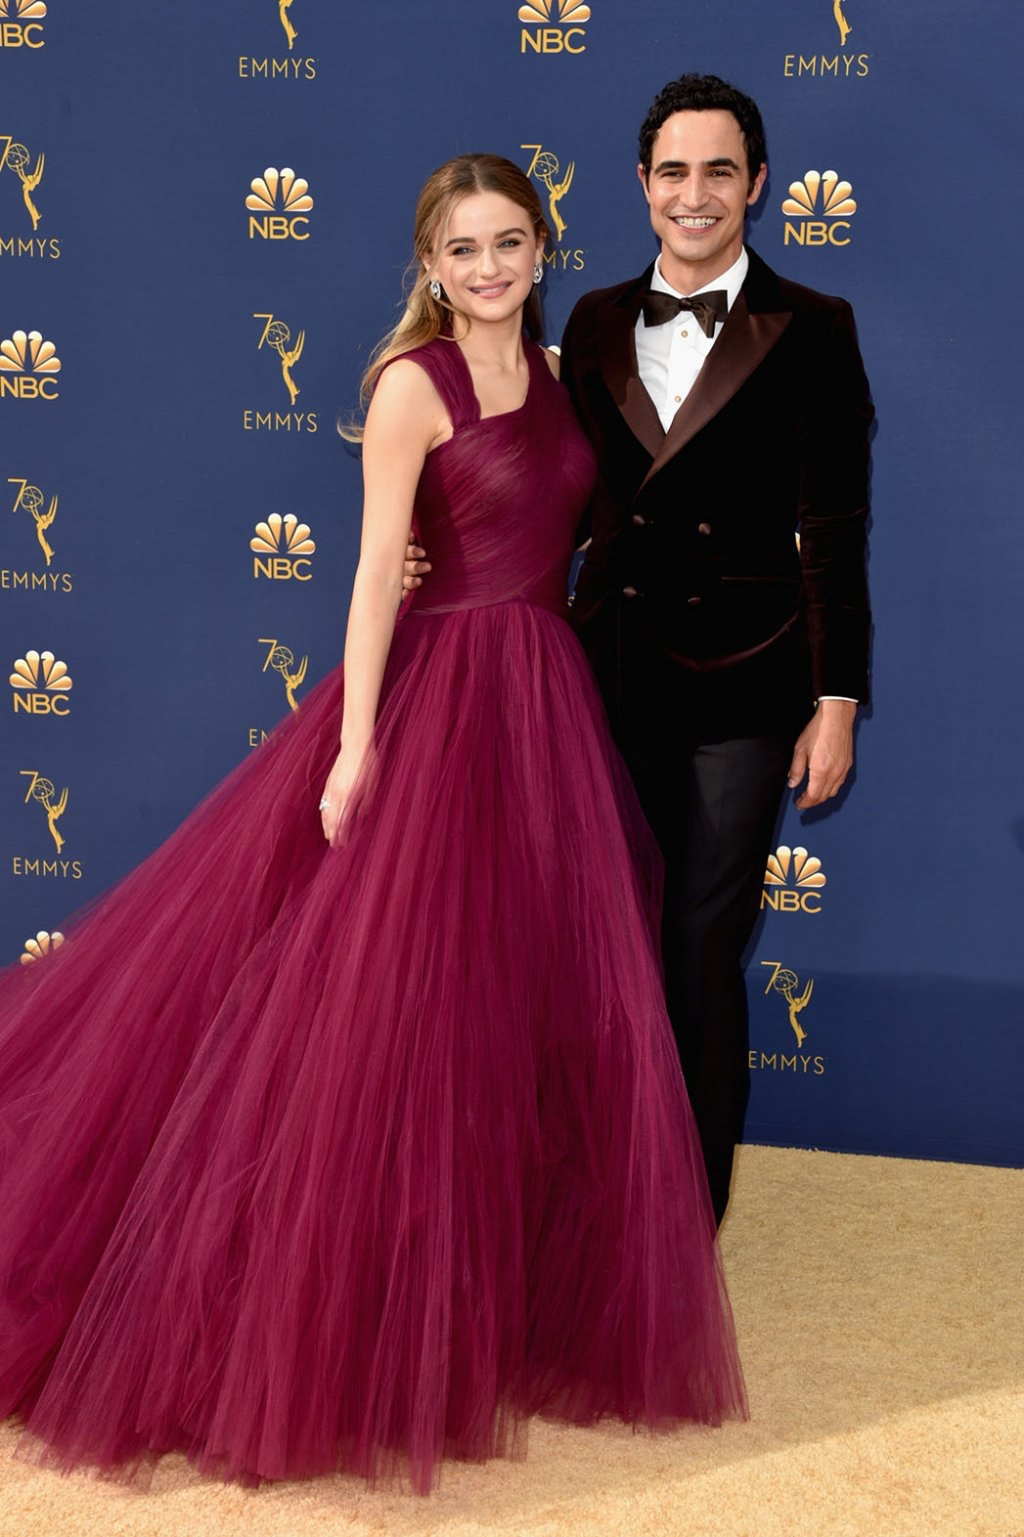 Joey King in Zac Posen with Zac Posen, 70th Annual Primetime Emmy Awards, Betty White, Emmys 2018, Fashion, Featured, Glenn Weiss, Hannah Gadsby, highlights, Jav Svendsen, Online Exclusive, Style, The Marvellous Mrs. Maisel, top moments, We solved it, Diversity